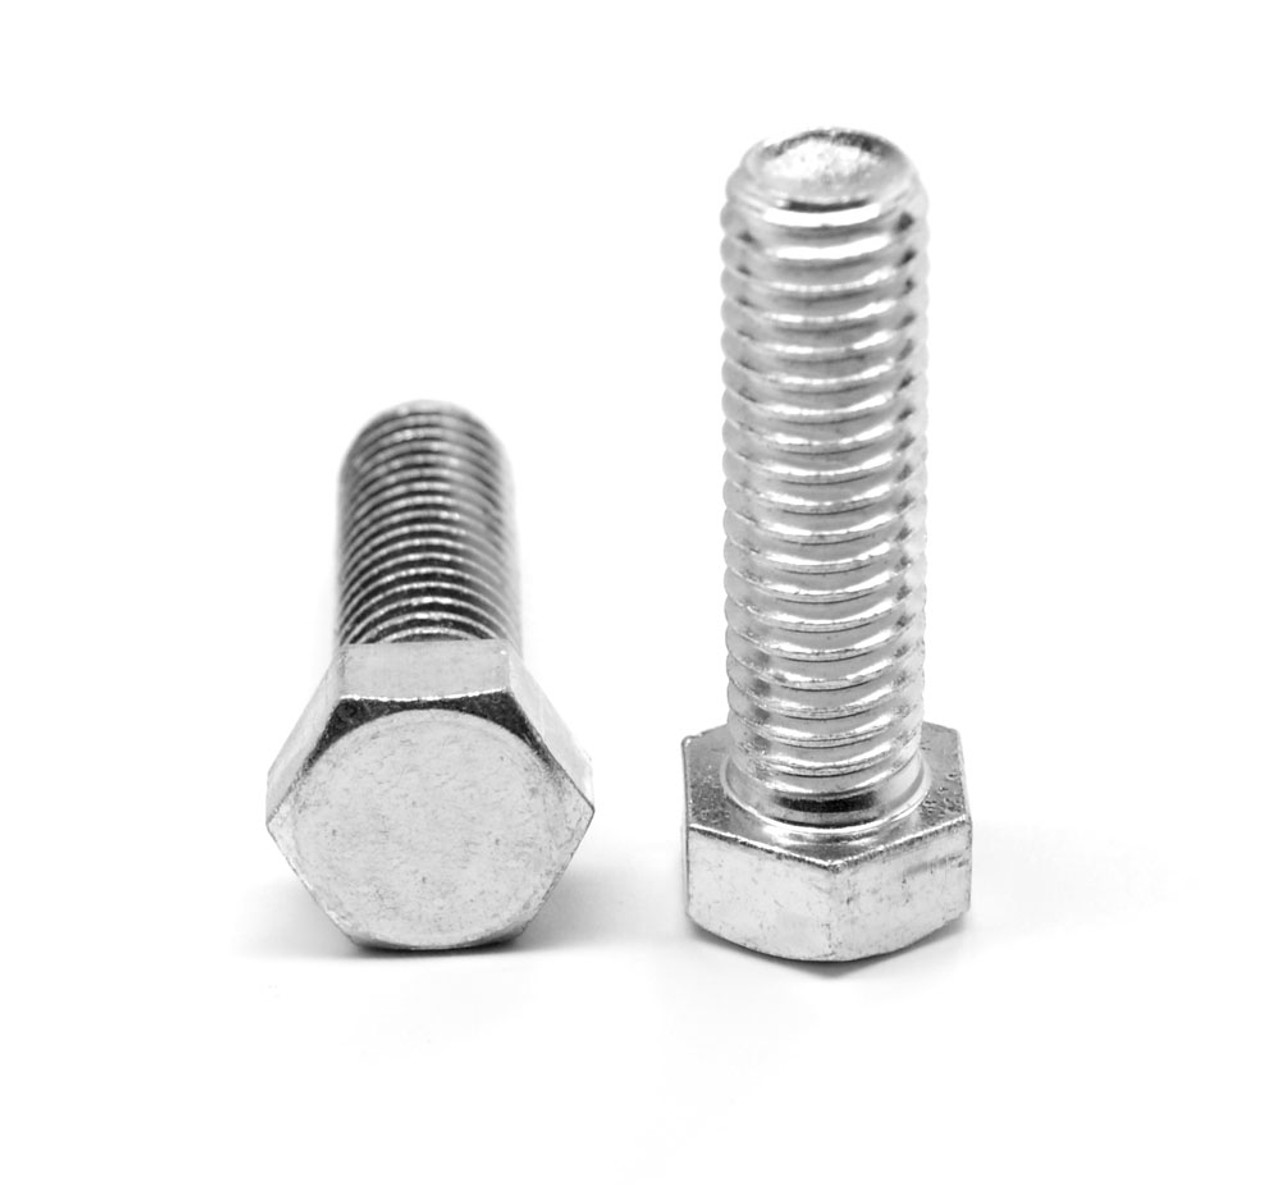 "1""-8 x 3"" (FT) Coarse Thread A307 Grade A Hex Tap (Full Thread) Bolt Low Carbon Steel Zinc Plated"